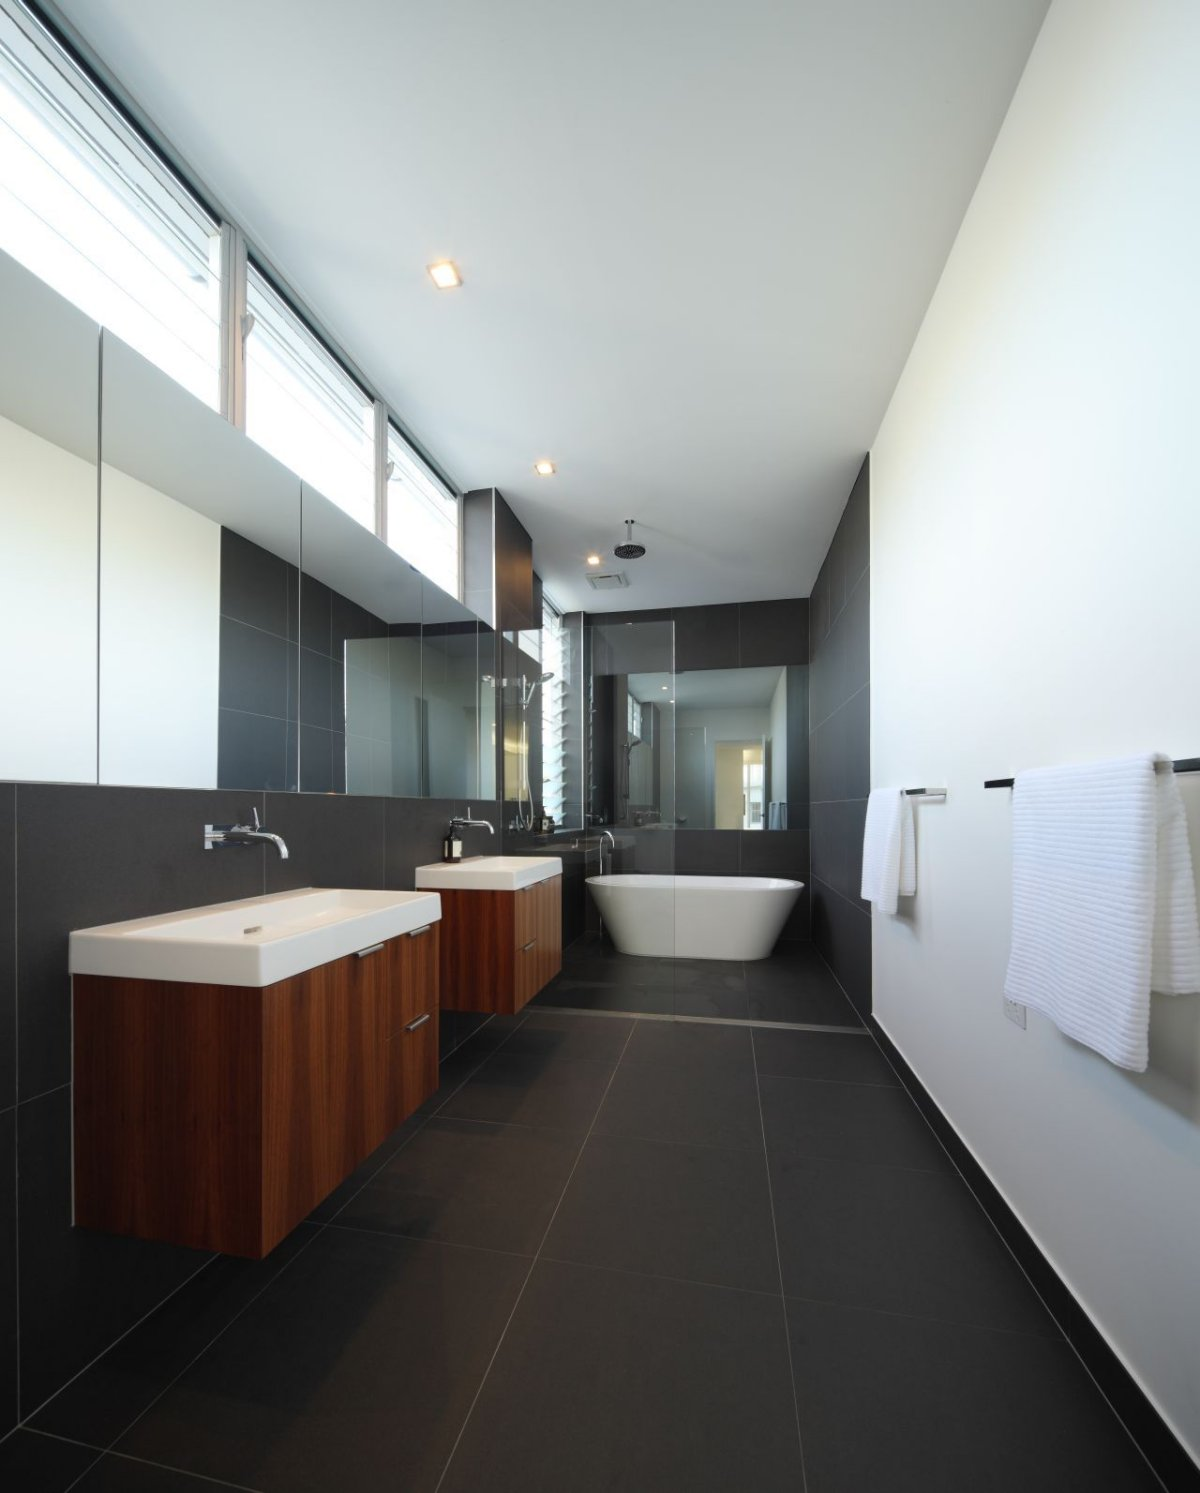 Grey Tiled Bathroom, Contemporary Family Home in Queensland, Australia